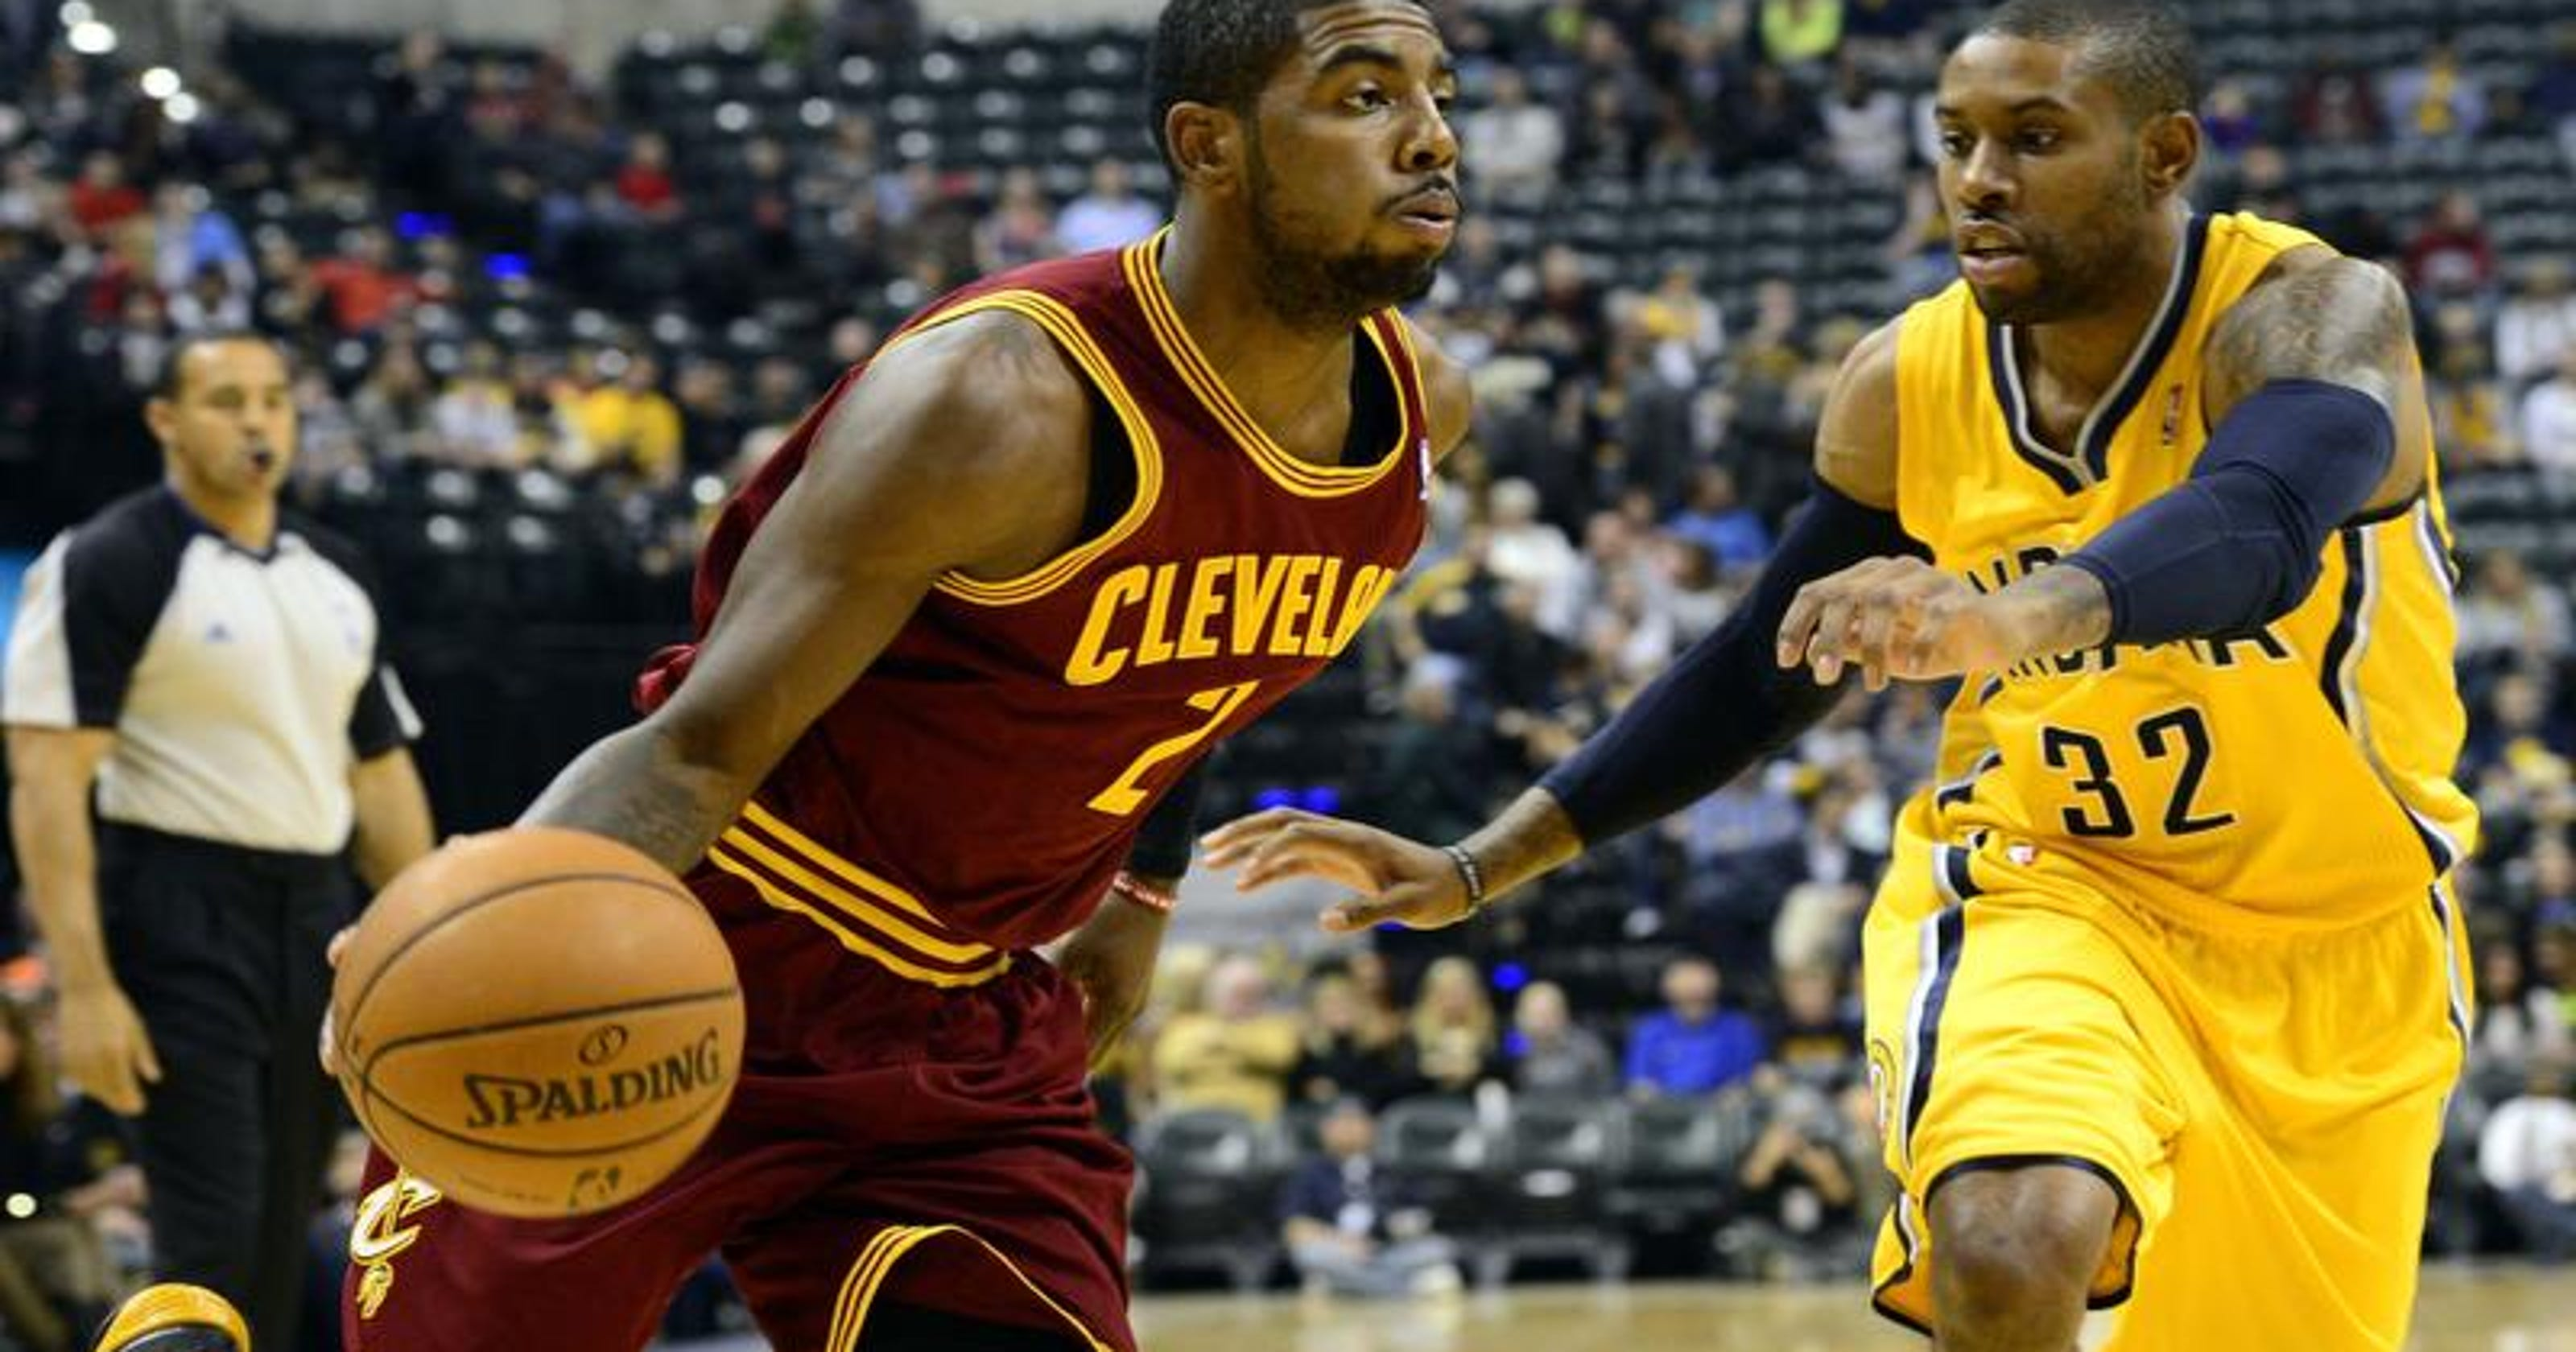 Pacers notes  C.J. Watson starts vs. Cleveland in place of injured George  Hill e07f0e48a